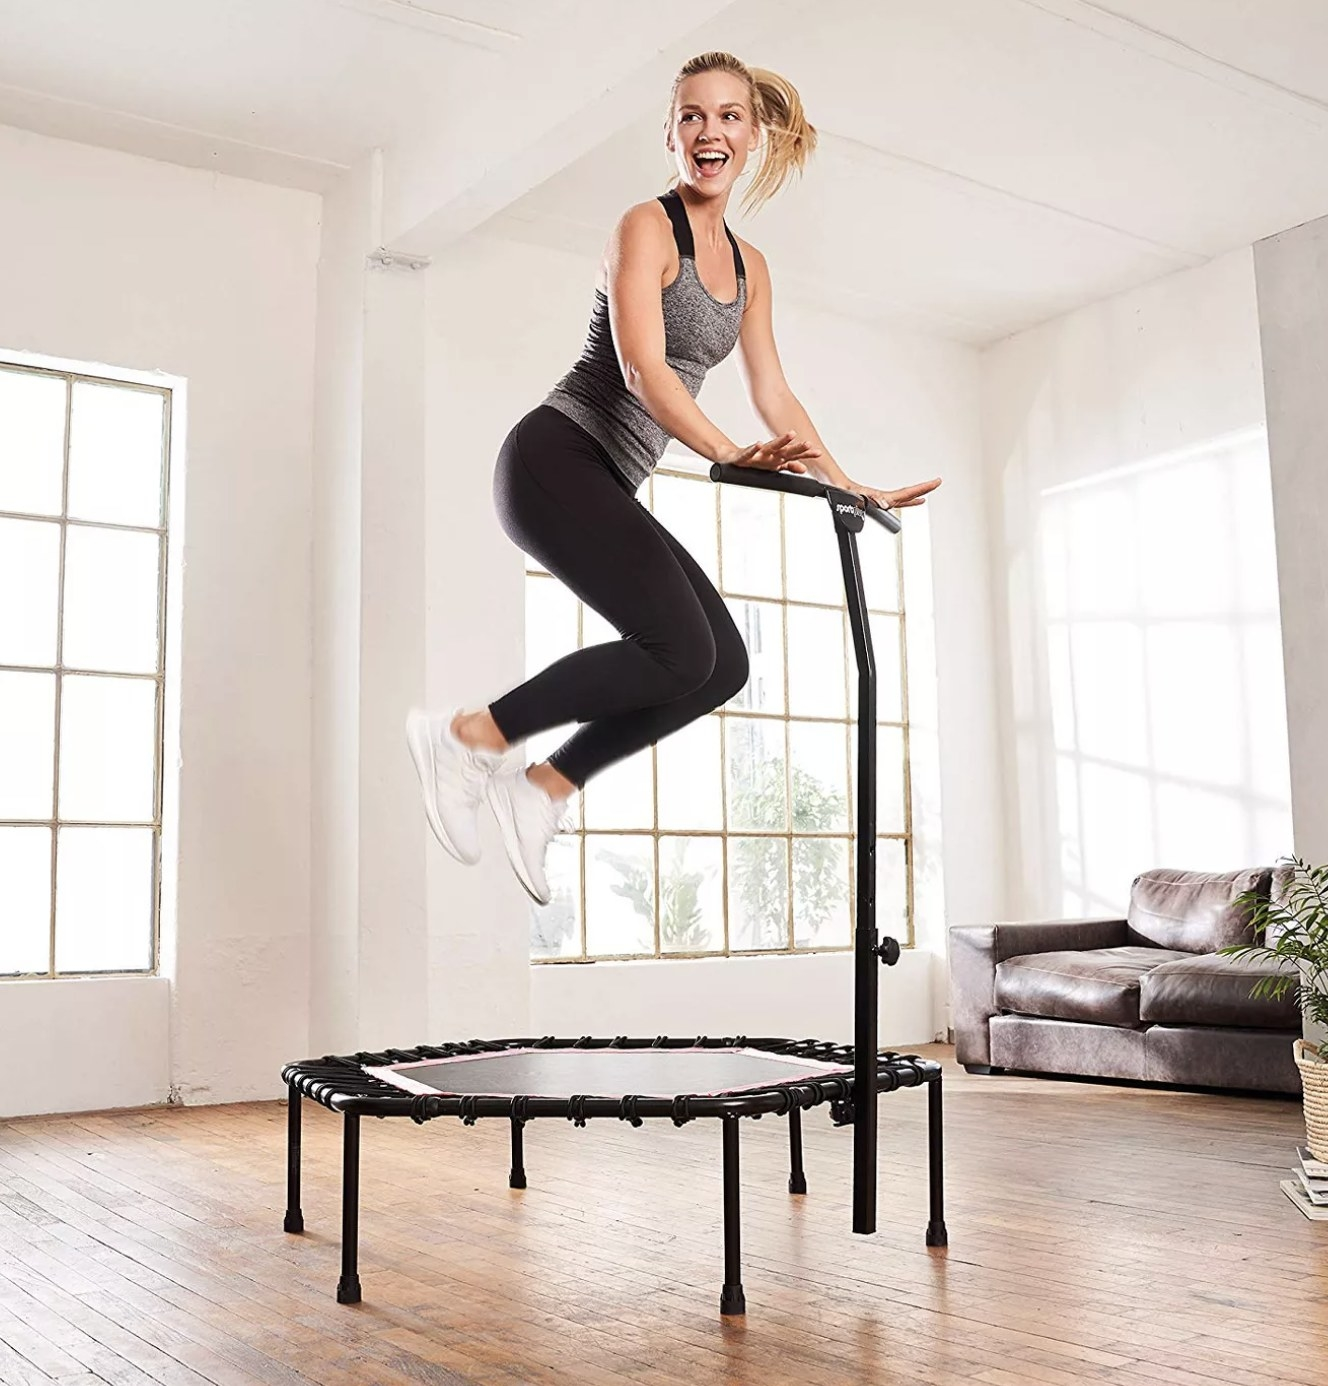 Person is jumping on a fitness trampoline